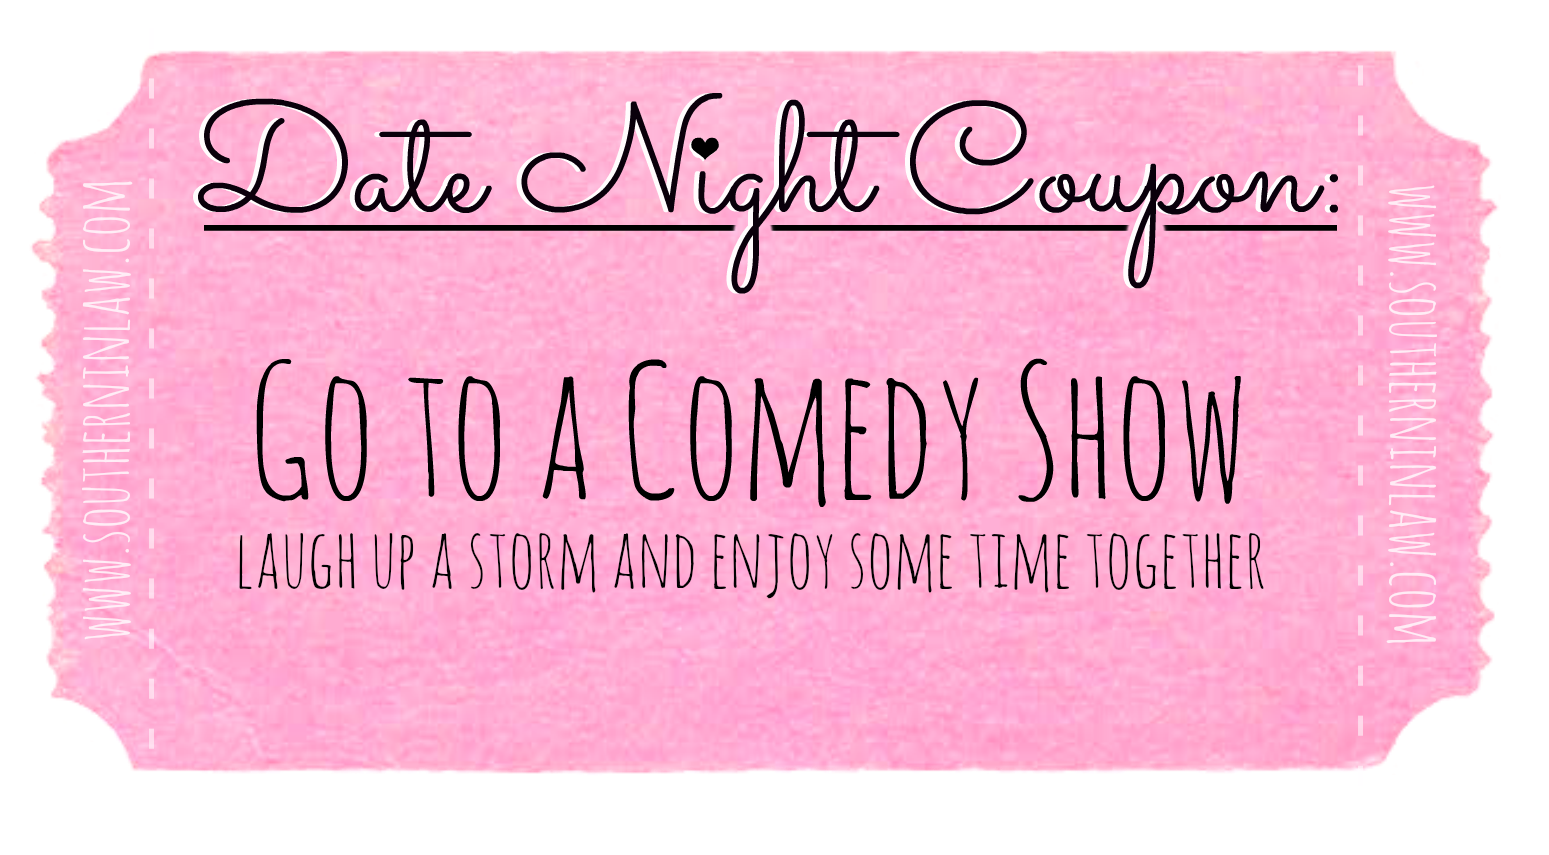 Affordable Date Ideas - Date Night Coupons - Go to a Comedy Show